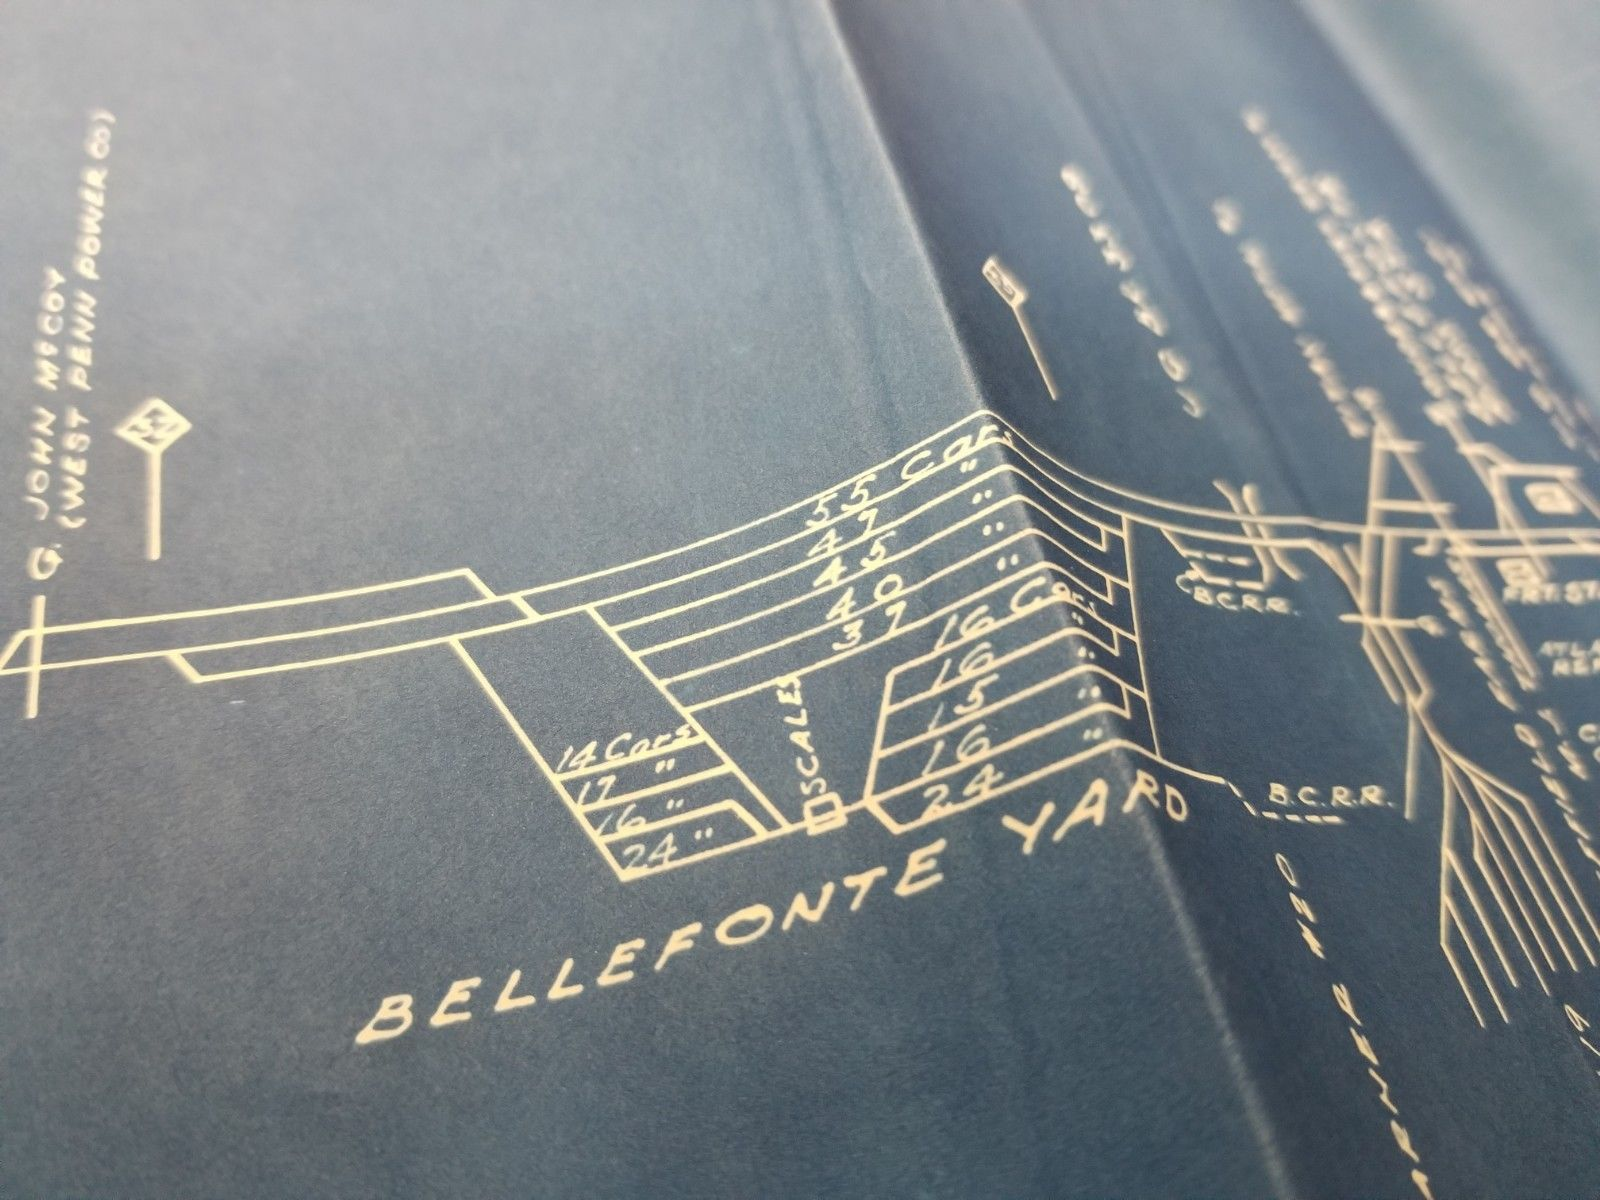 Bellefonte tc 1950 5